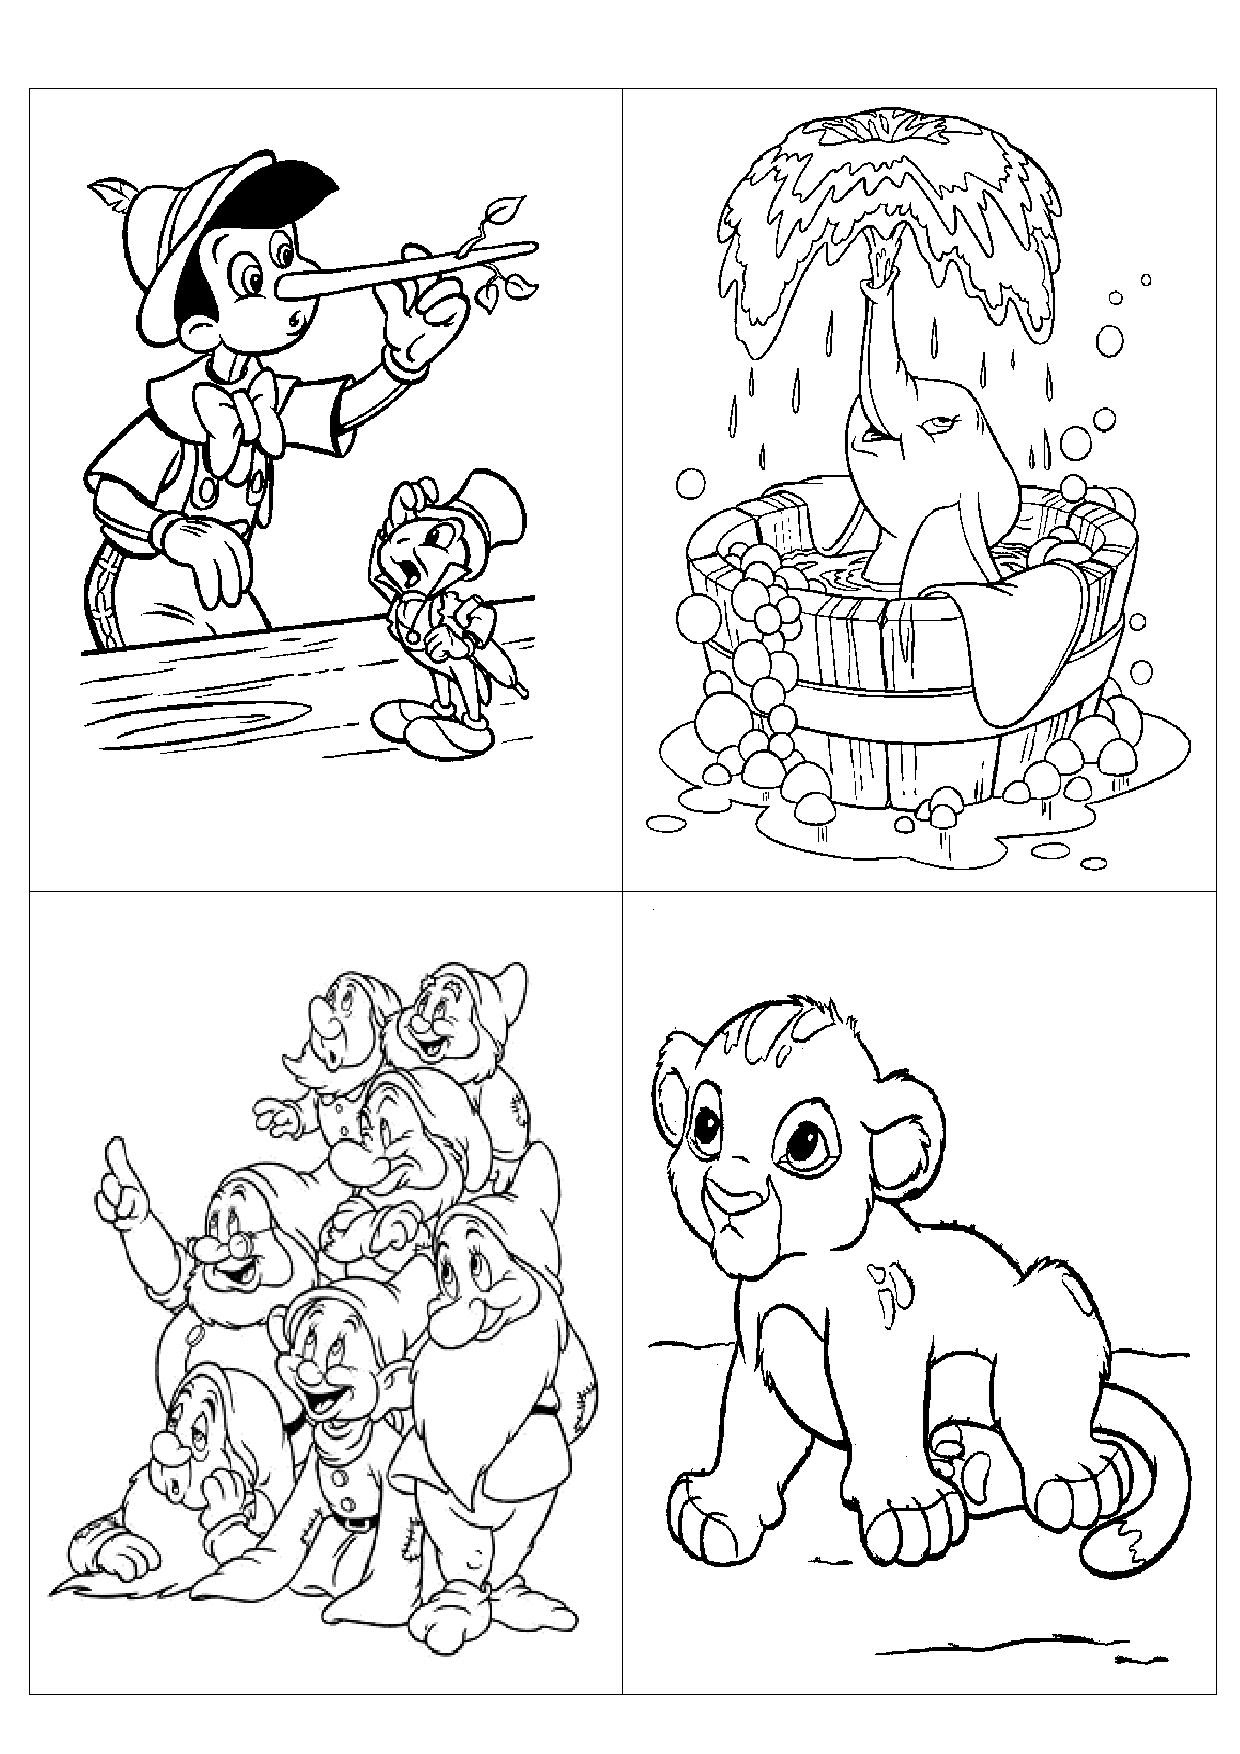 coloriage disney coloriage disney coloriage disney coloriage disney coloriage disney